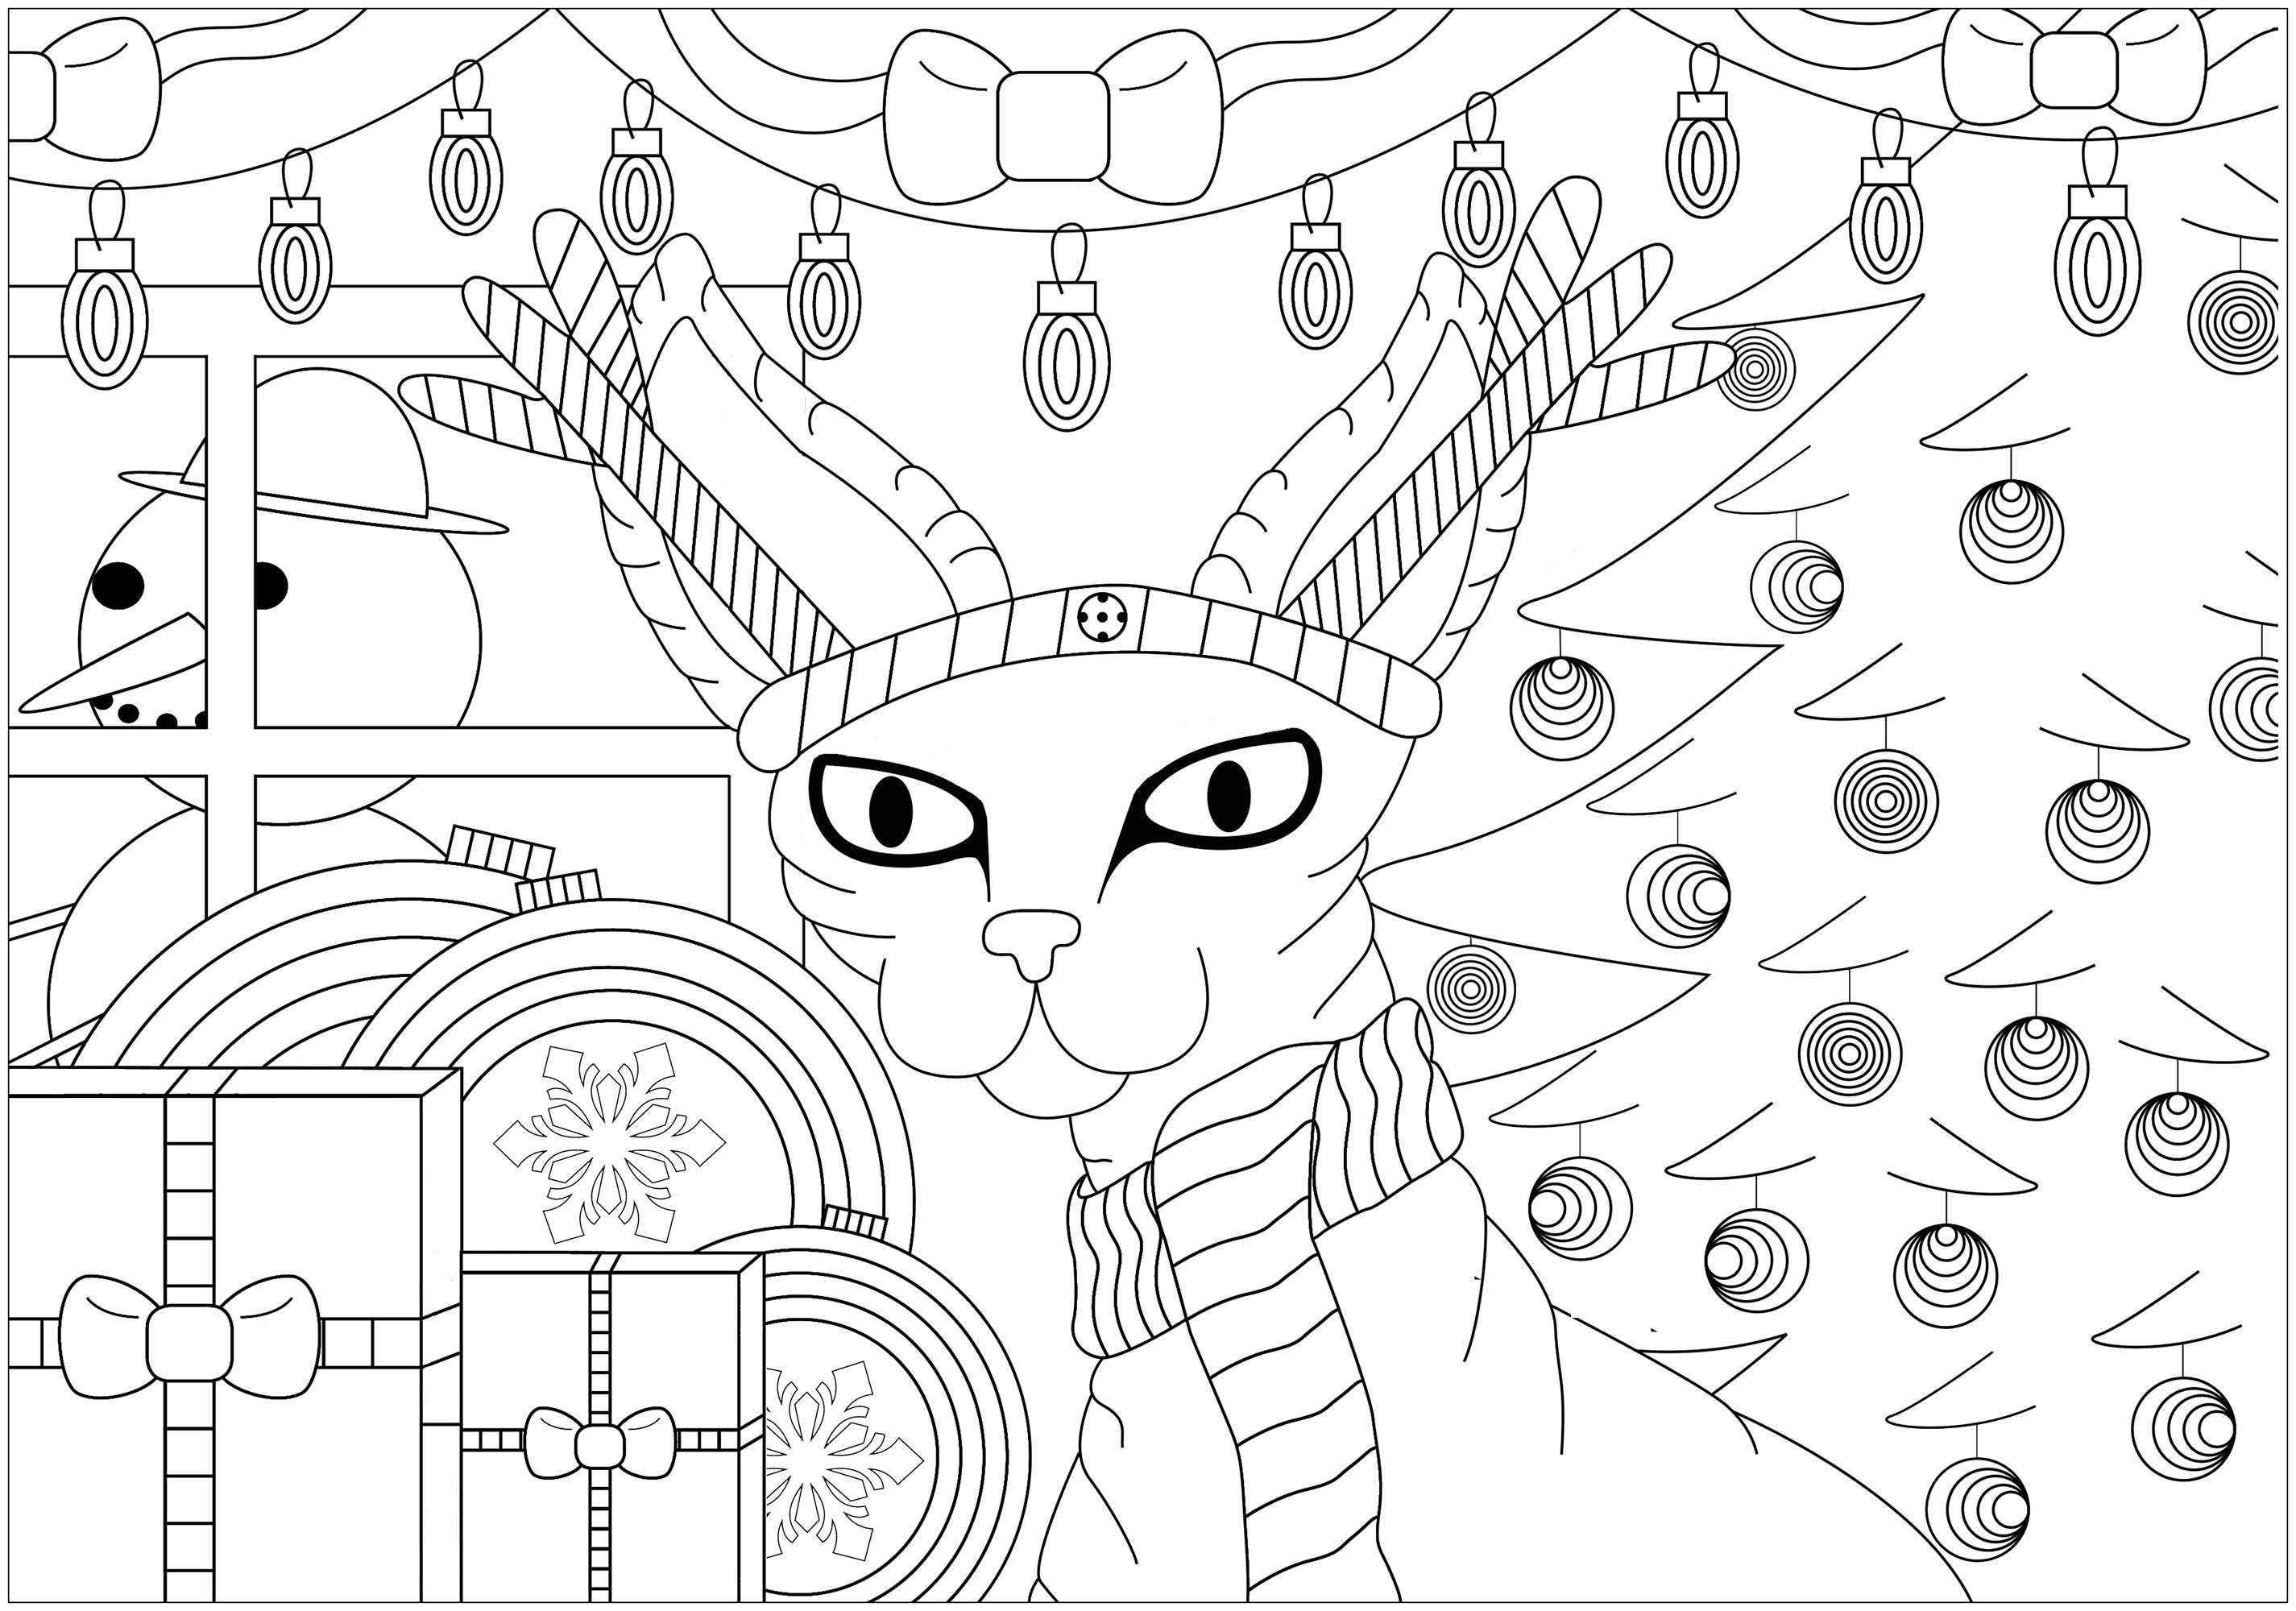 Coloriage Chat Noel.Chat Sphinx De Noel Noel Coloriages Difficiles Pour Adultes